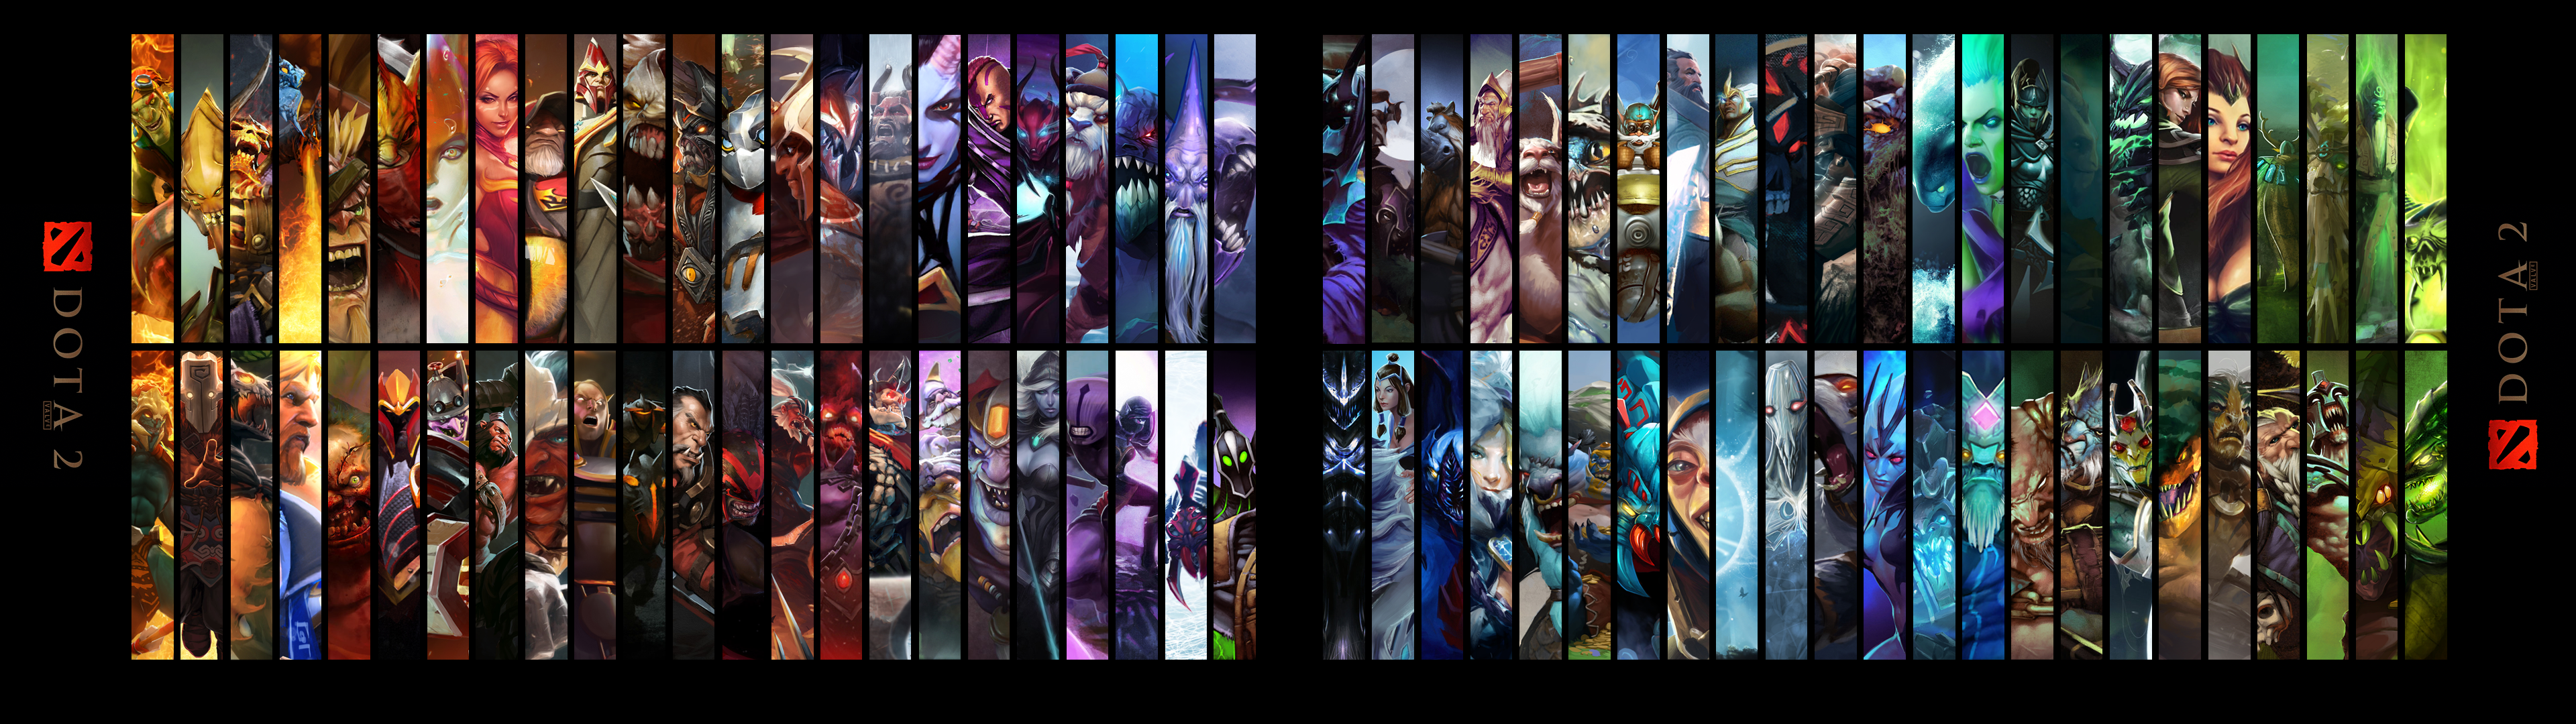 Awesome Dual Screen Wallpaper 3840x1080 DotA2 3840x1080